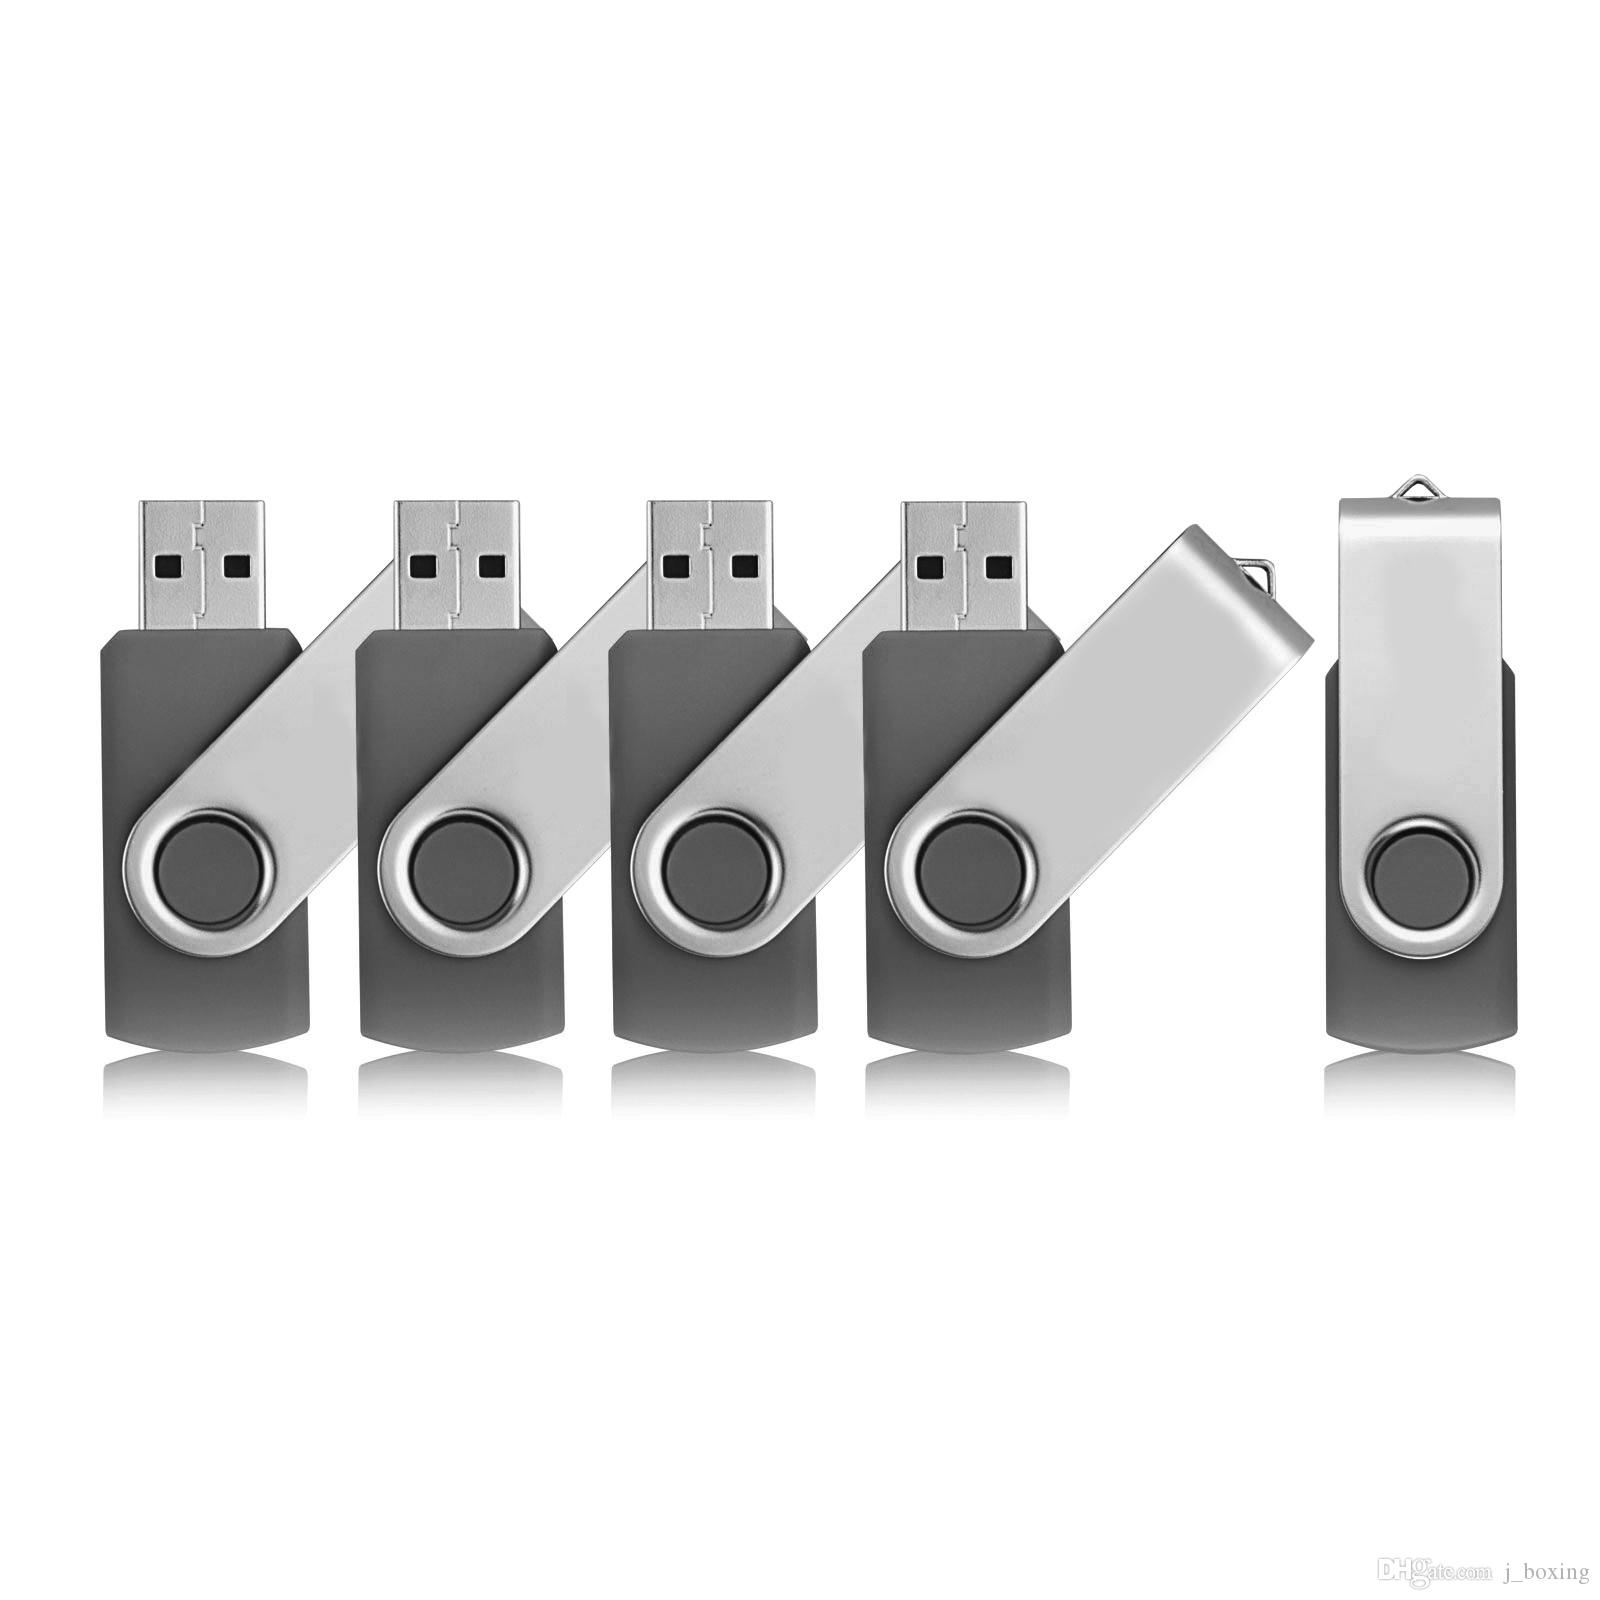 Gray 5PCS/LOT 1G 2G 4G 8G 16G 32G 64G Rotating USB Flash Drives Flash Pen Drive High Speed Memory Stick Storage for PC Laptop Macbook